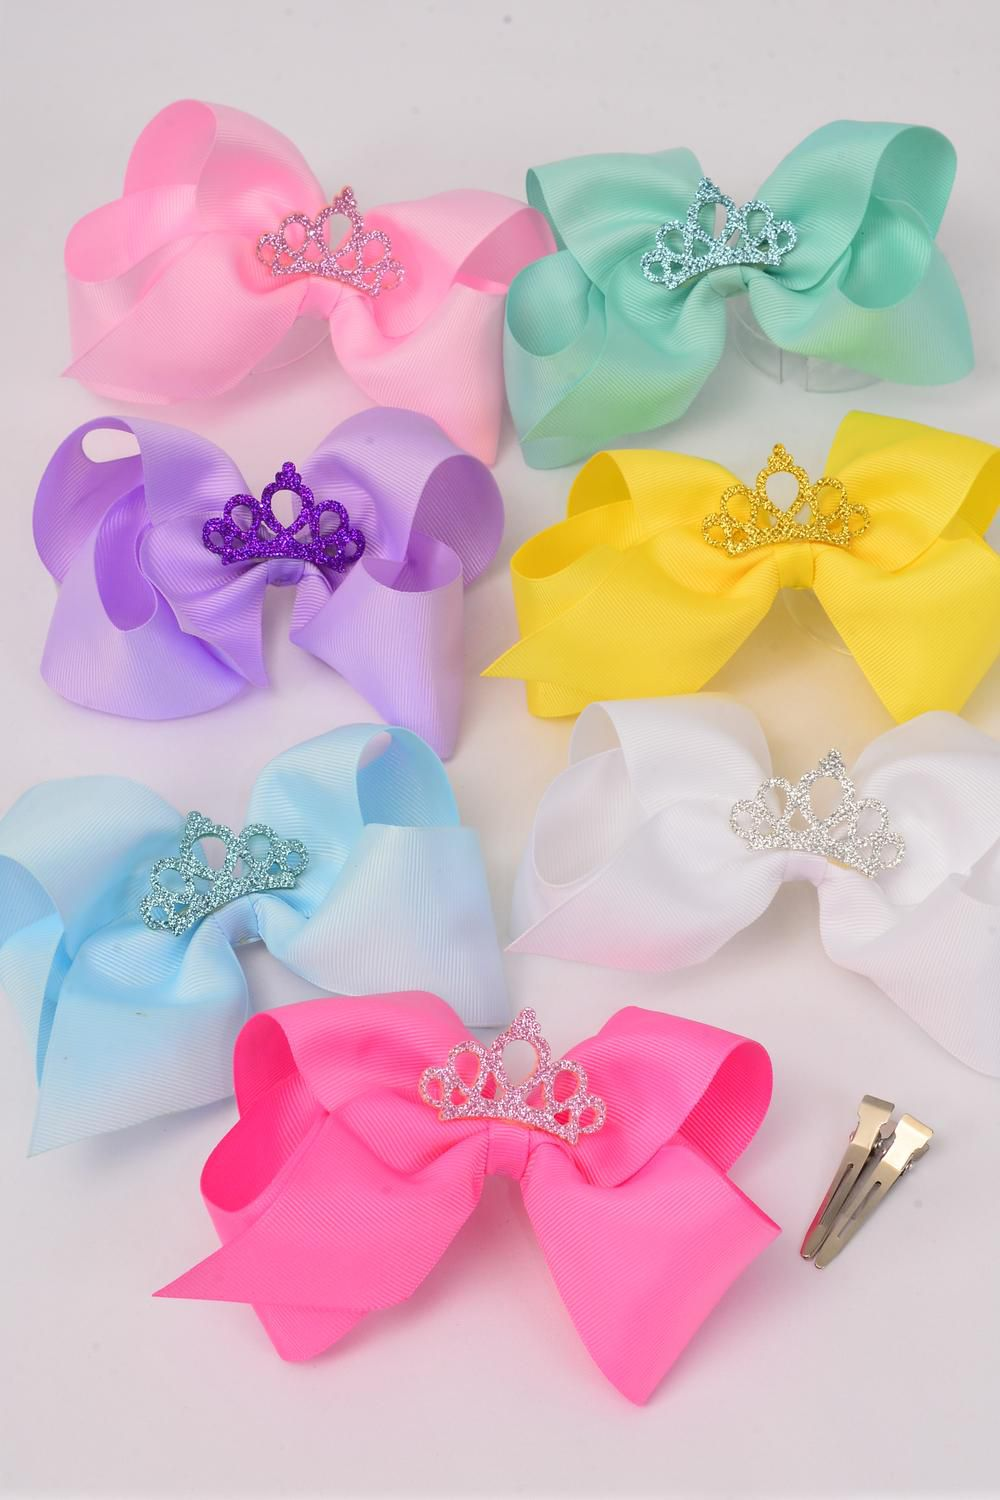 "Hair Bow Jumbo Center Tiara Pastel Grosgrain Bow-tie/DZ **Pastel** Alligator Clip,Size-6""x 6"" Wide,2 White,2 Pink,2 Blue,2 Yellow,2 Lavender,1 Hot Pink,1 Mint Green,7 Color Asst,Clip Strip & UPC Code"